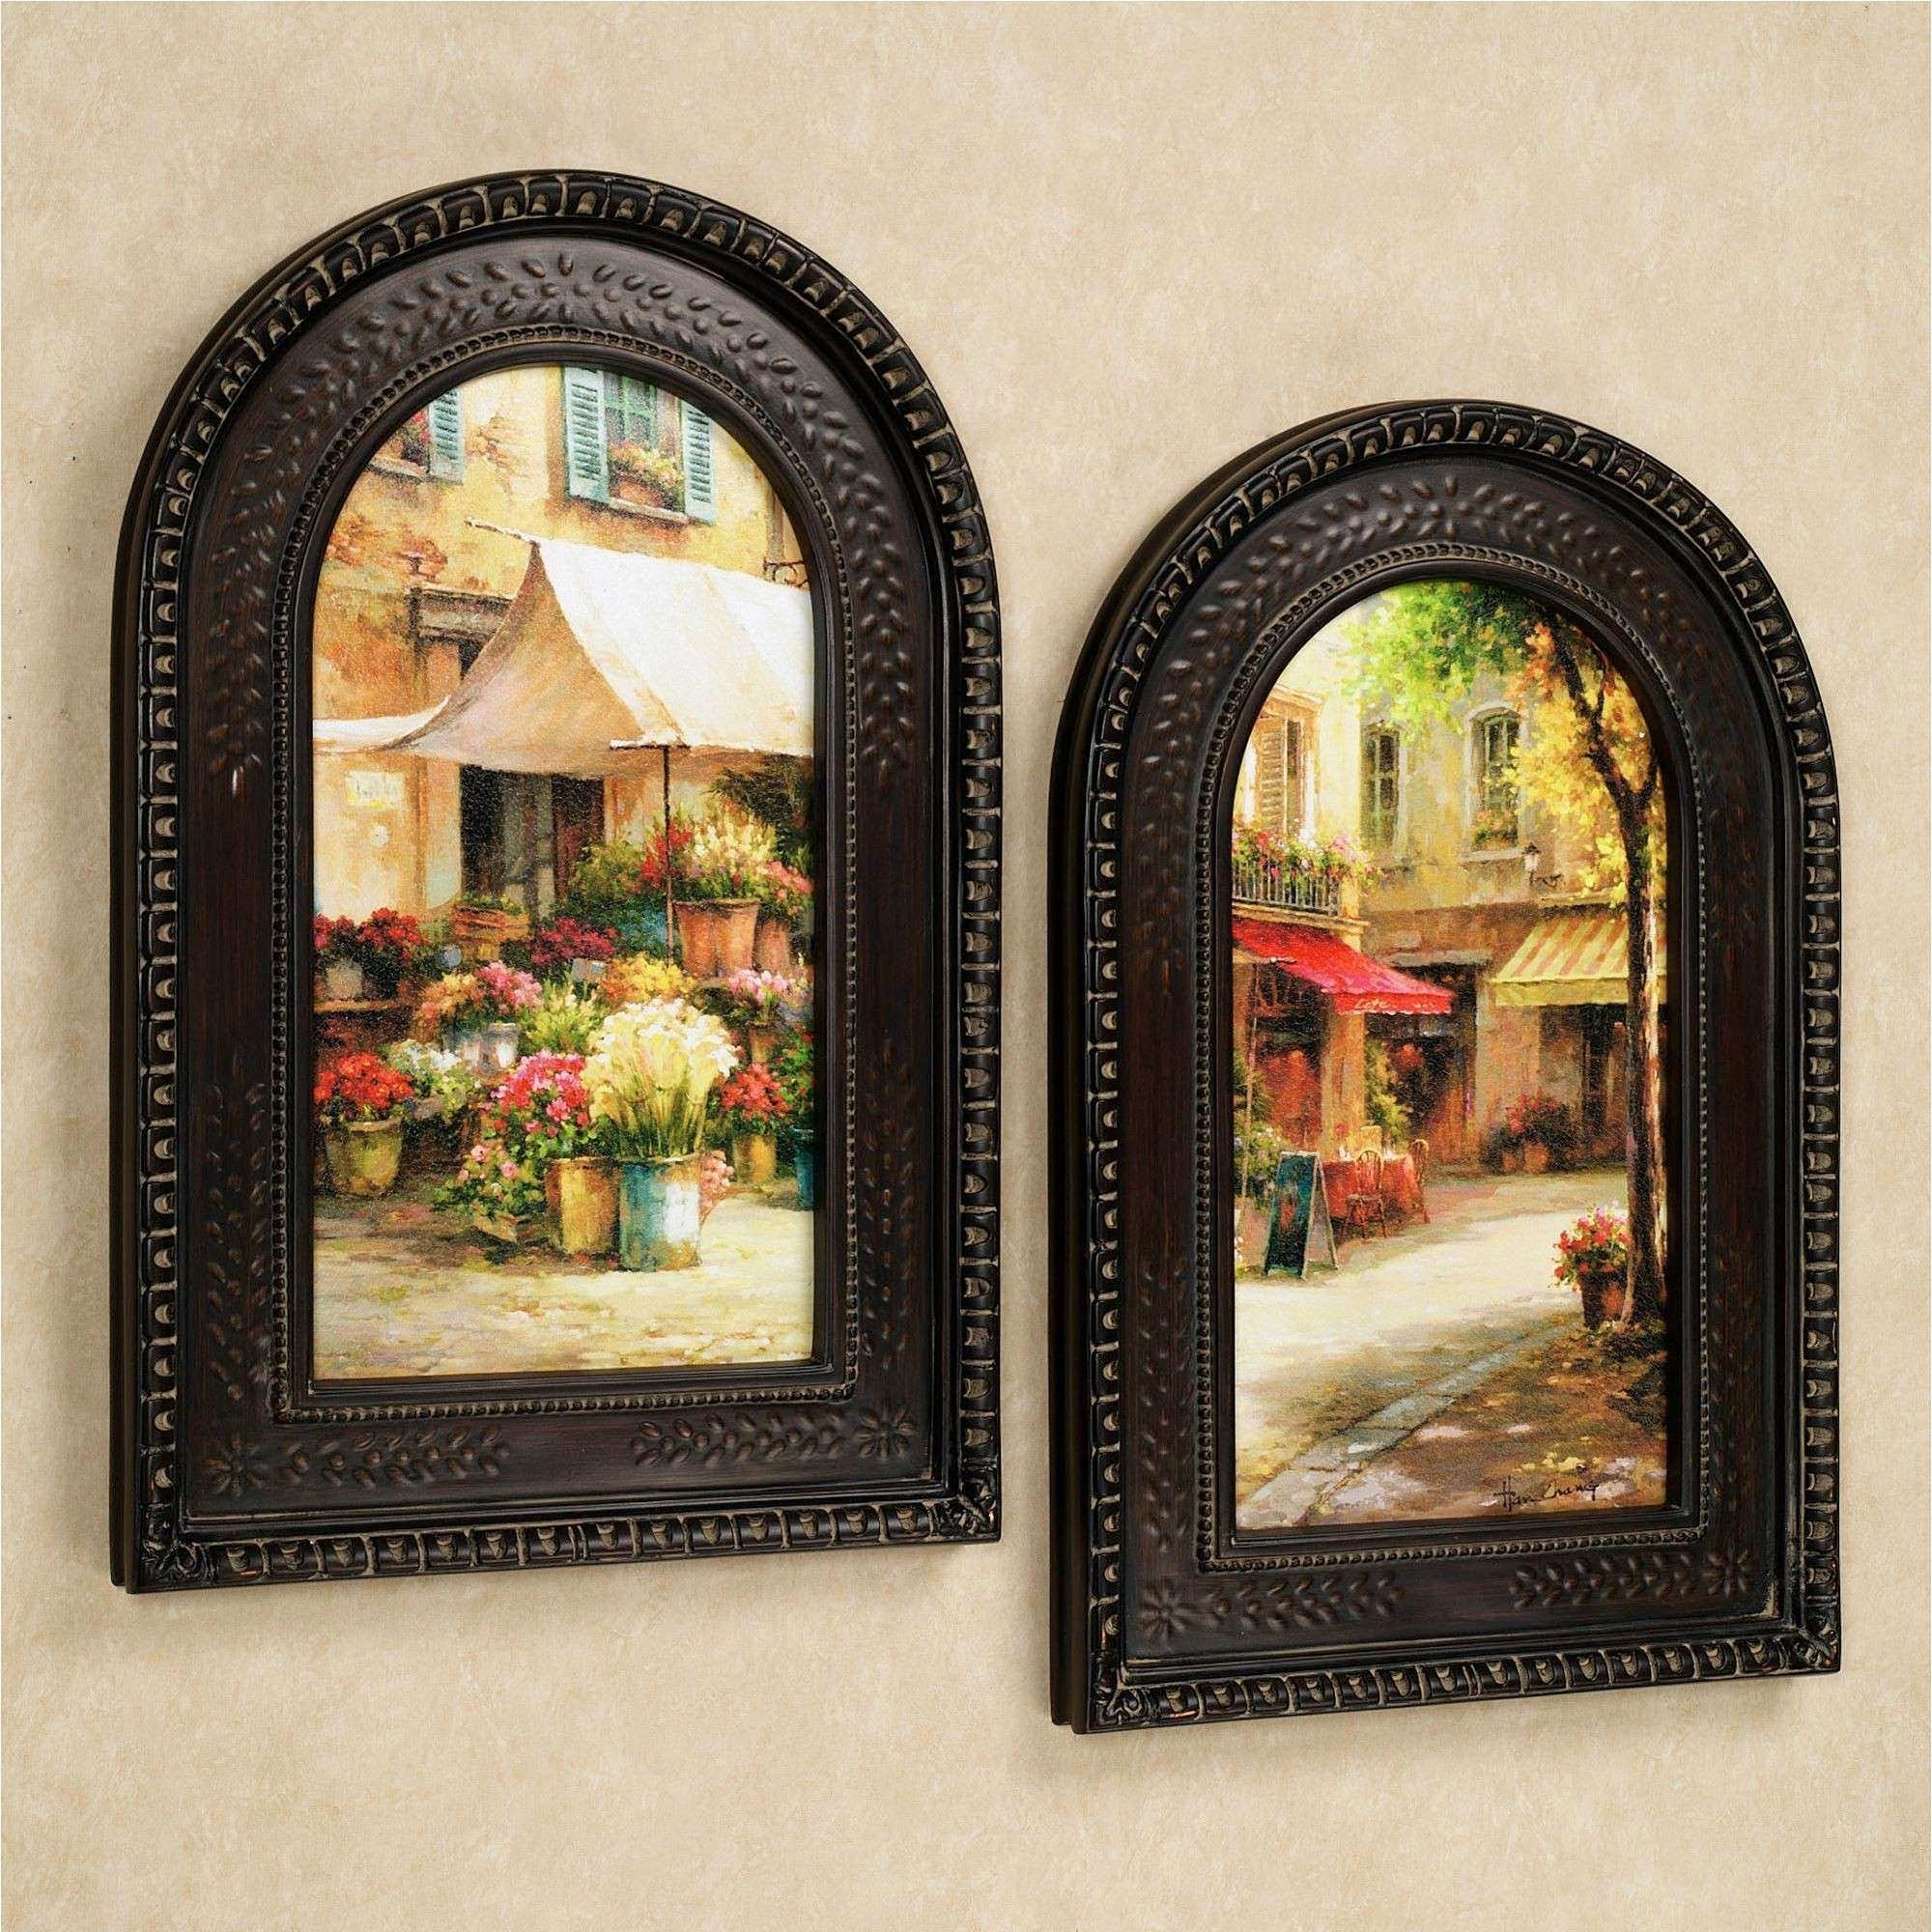 Tuscan Wall Art New The Flower Market Arched Framed Wall Art Set Inside 2017 Tuscan Wall Art (View 16 of 20)